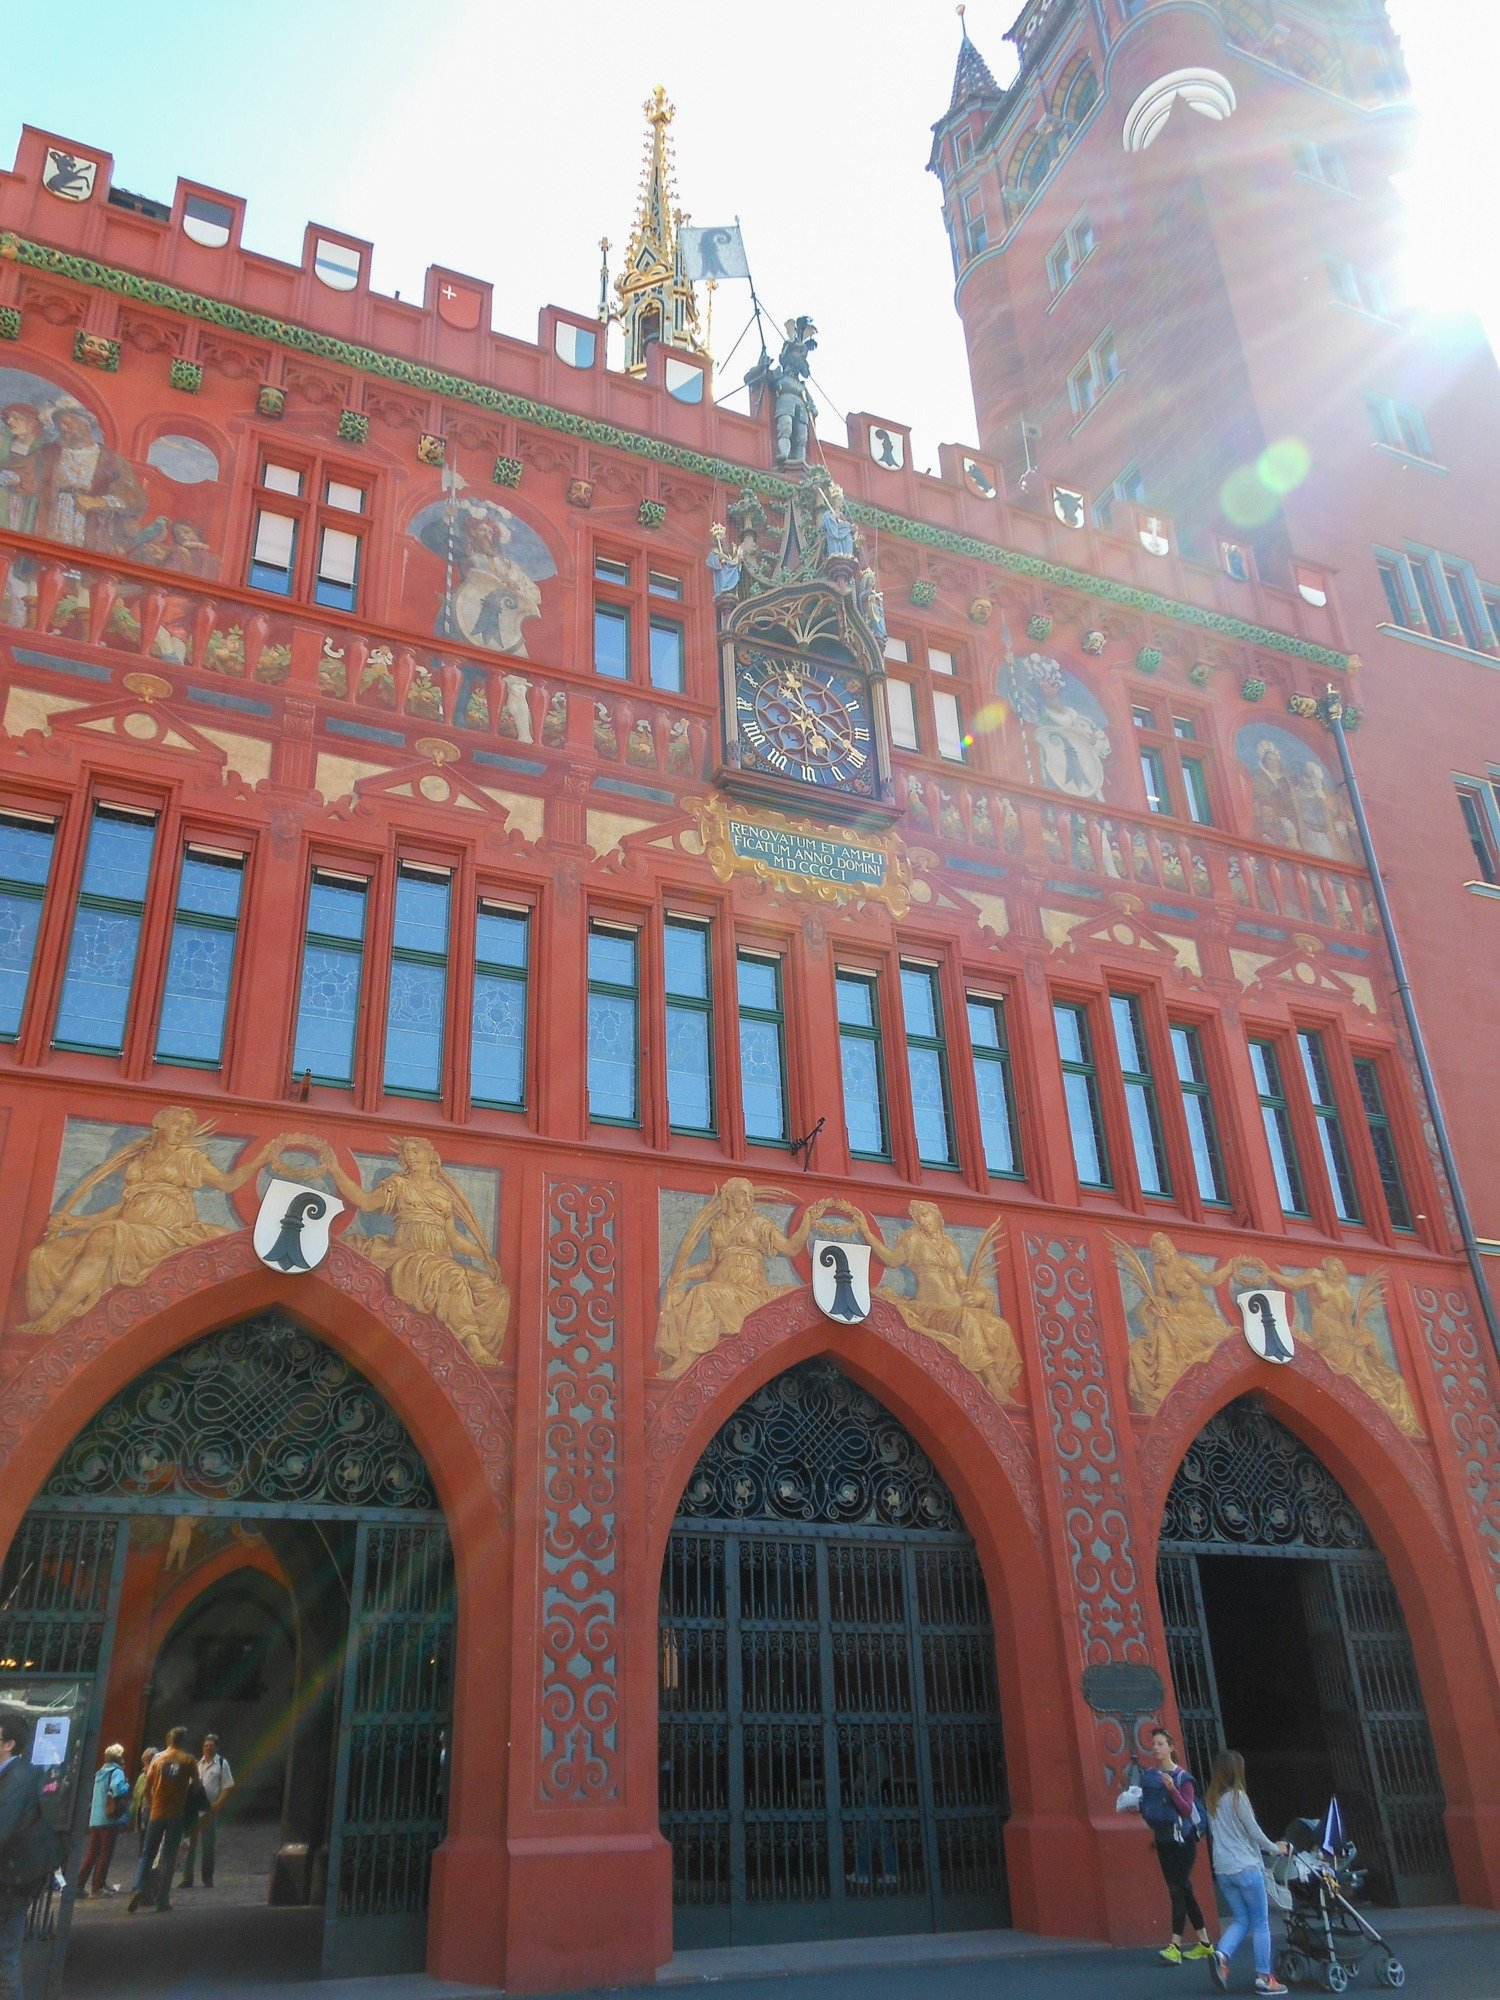 Basel's colorful Town Hall, Rathaus